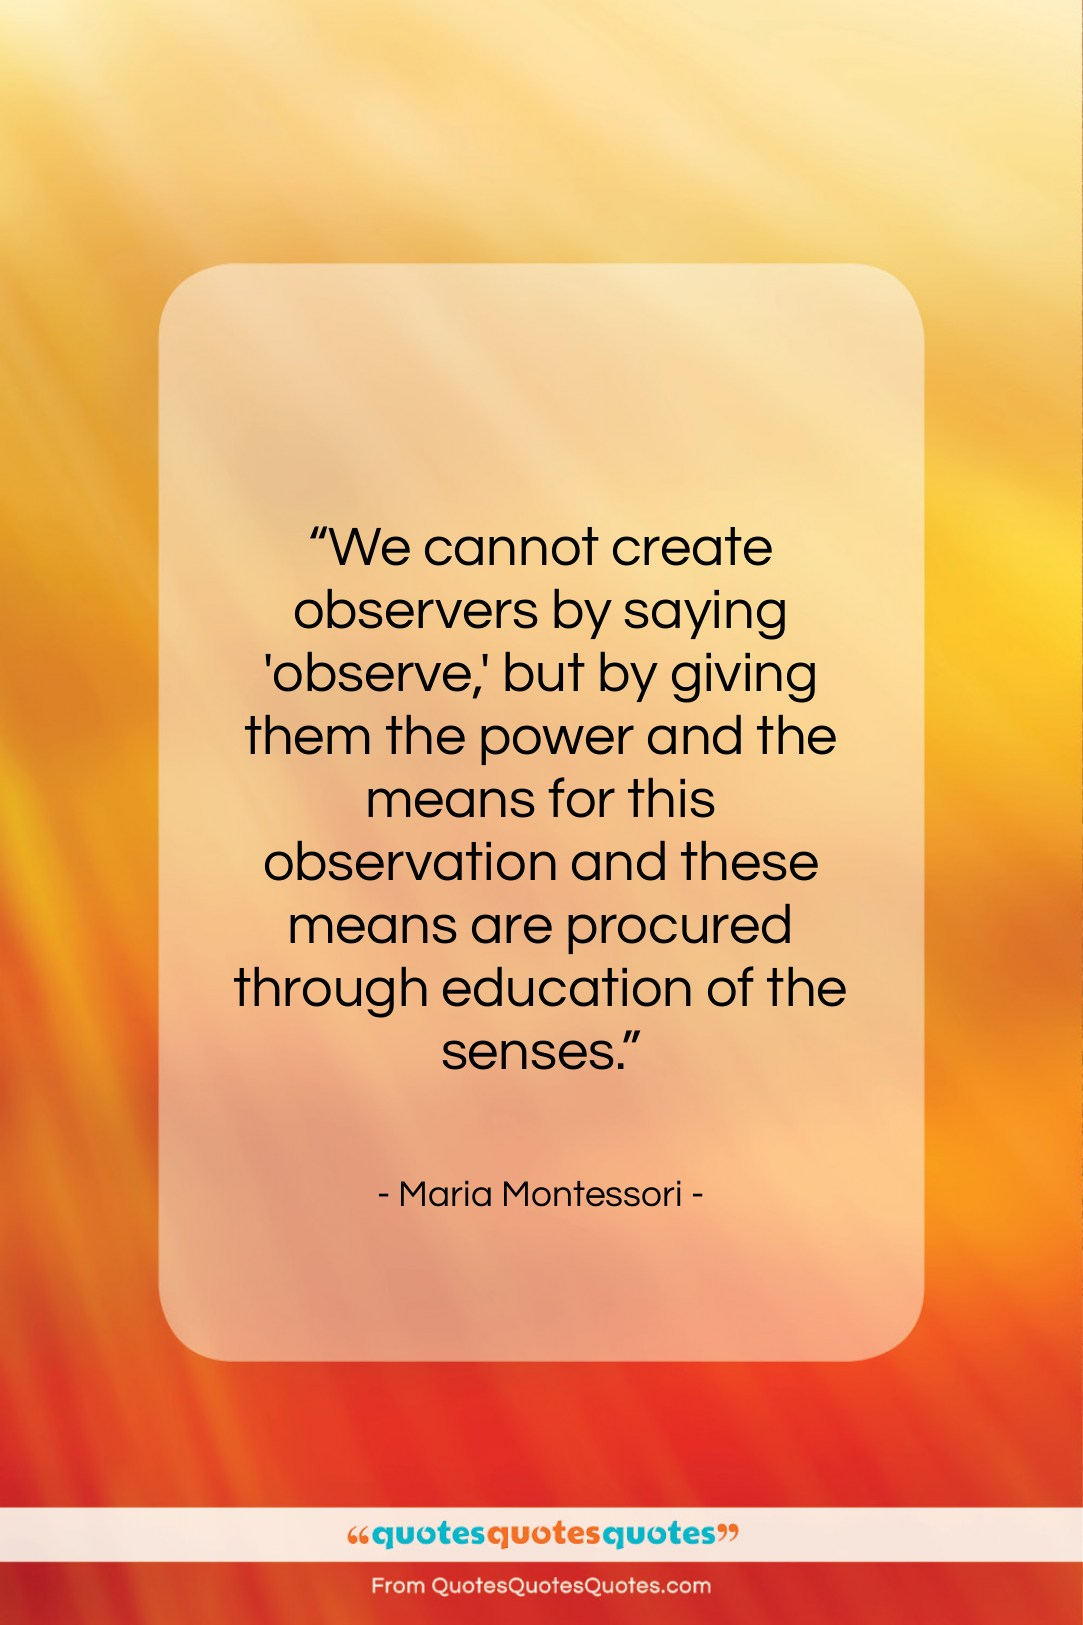 Get The Whole Maria Montessori Quote We Cannot Create